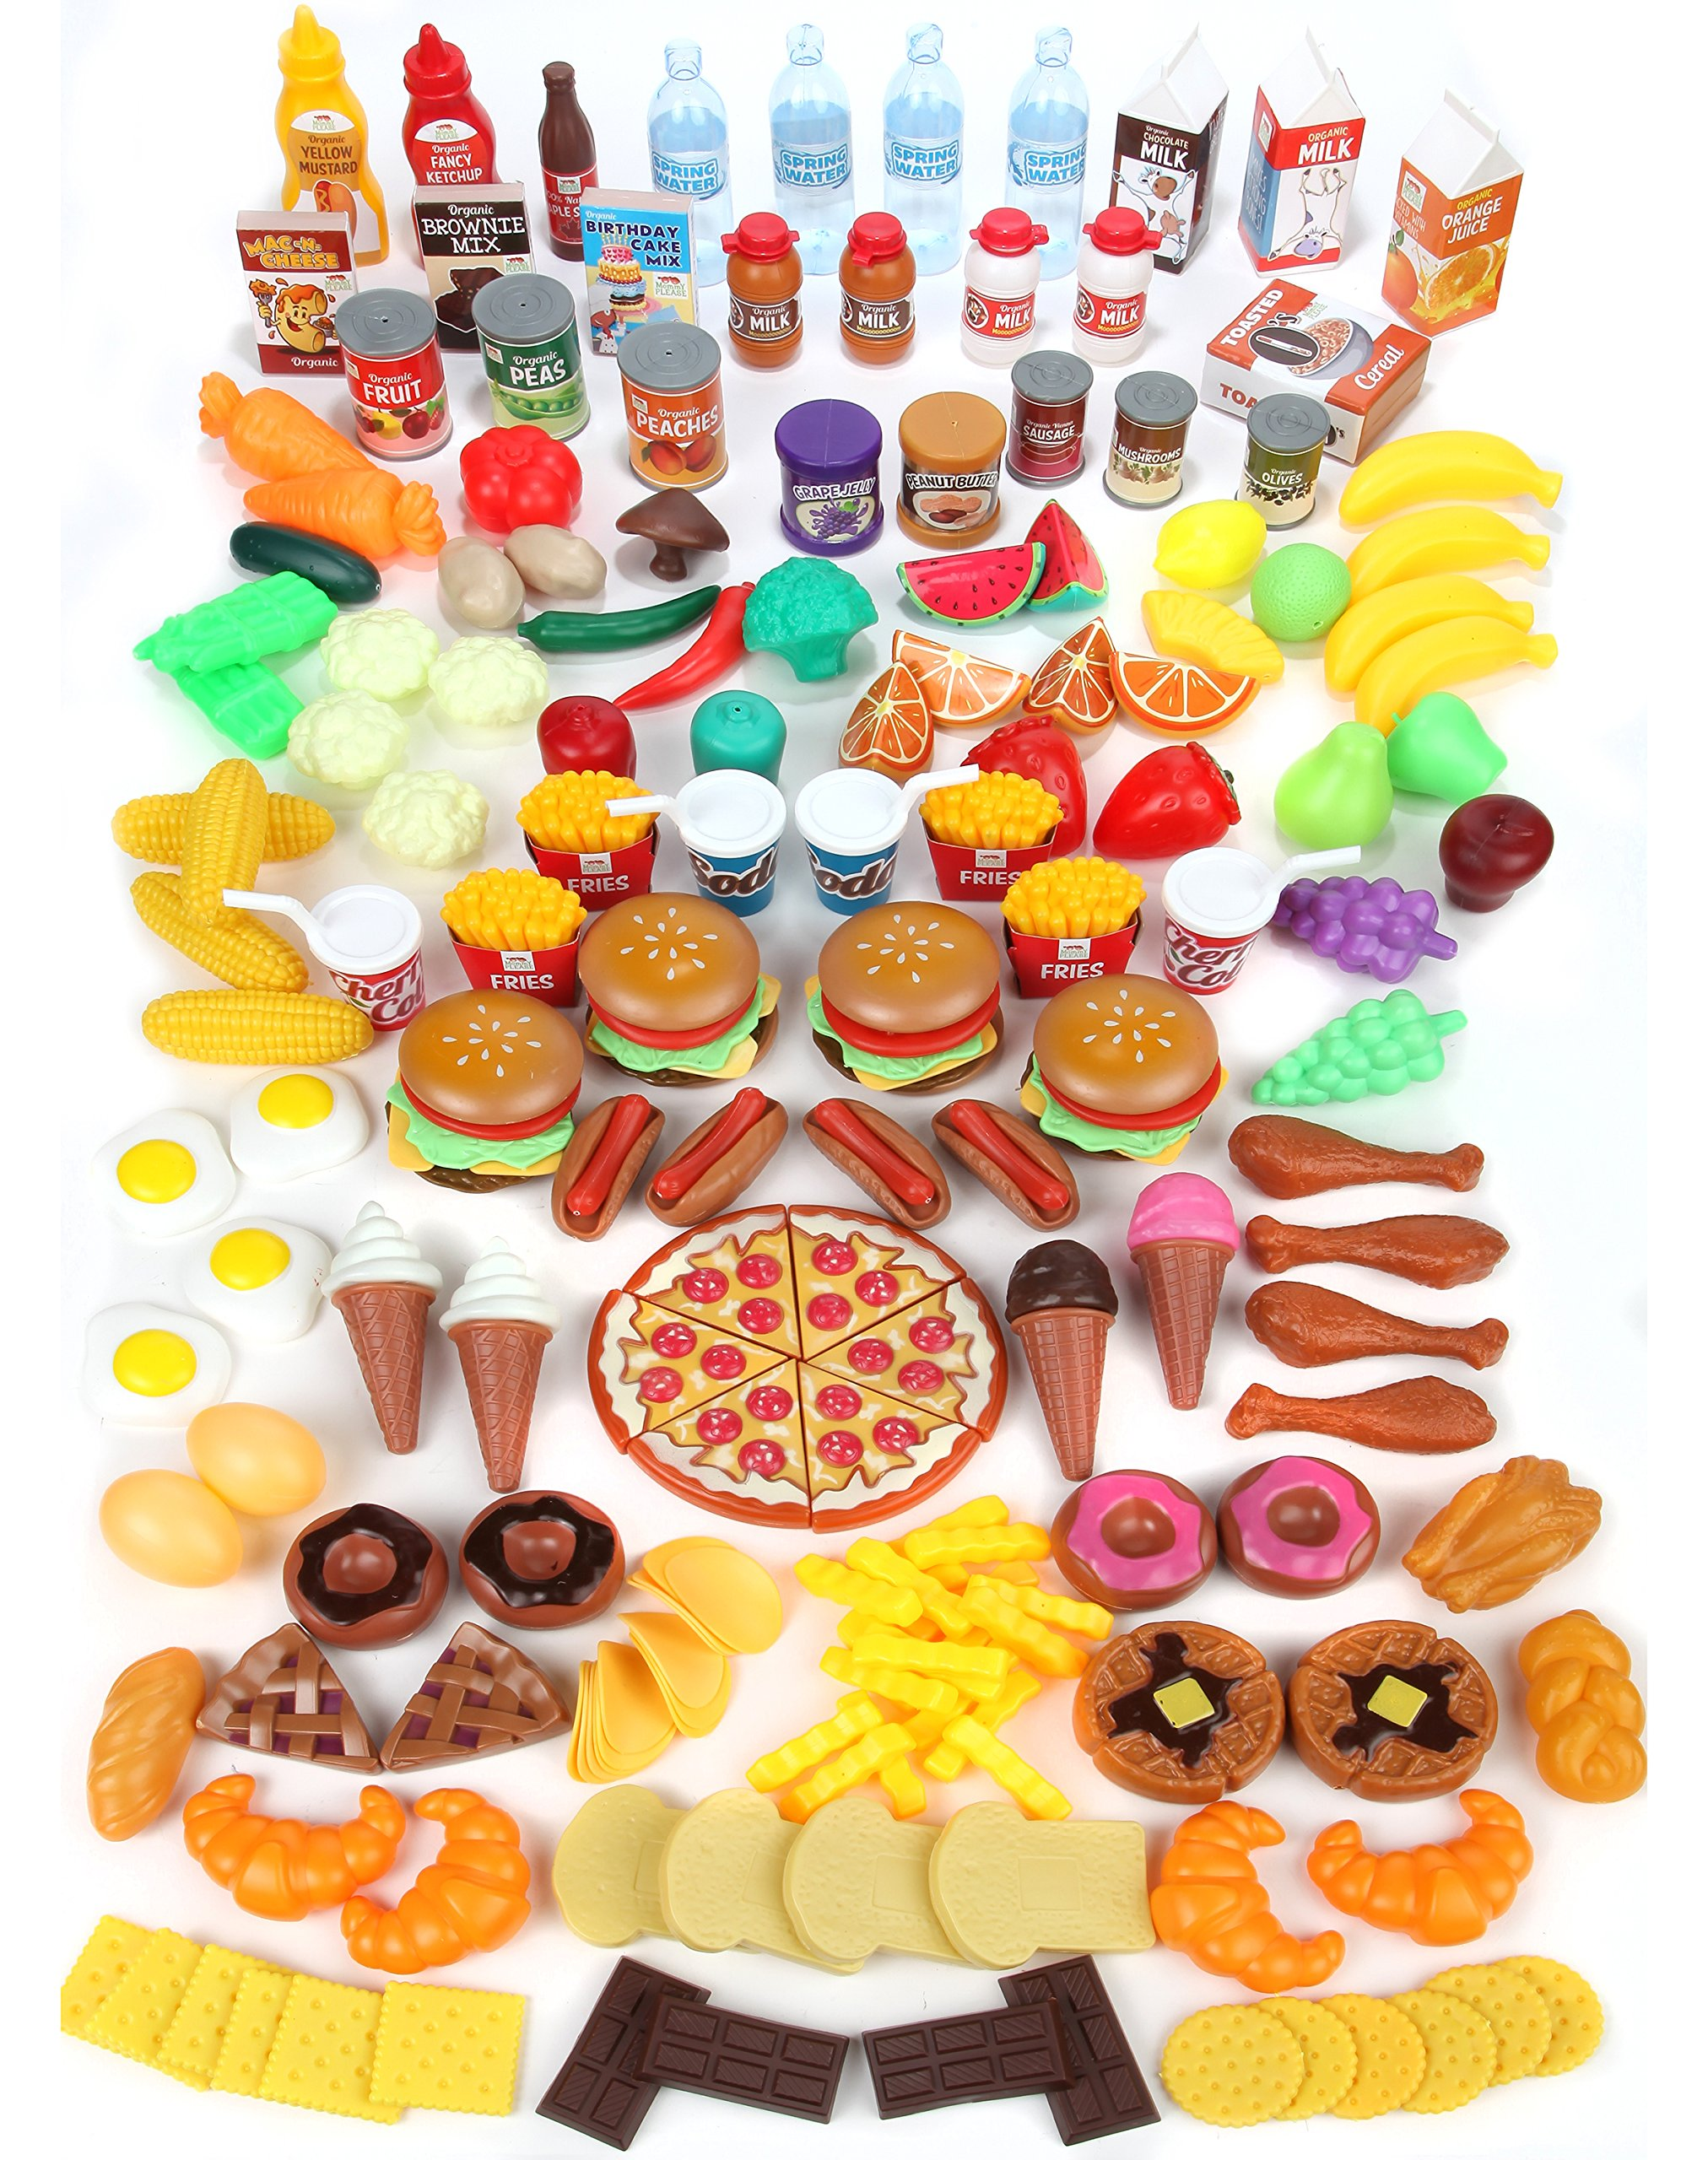 Mommy Please Play Food Set for Kids - Huge 202 Piece Pretend Food Toys is Perfect for Kitchen Sets and Play Food Kitchen Toys - Inspire Your Toddlers Imagination + 4 Bonus Water Bottles by Mommy Please